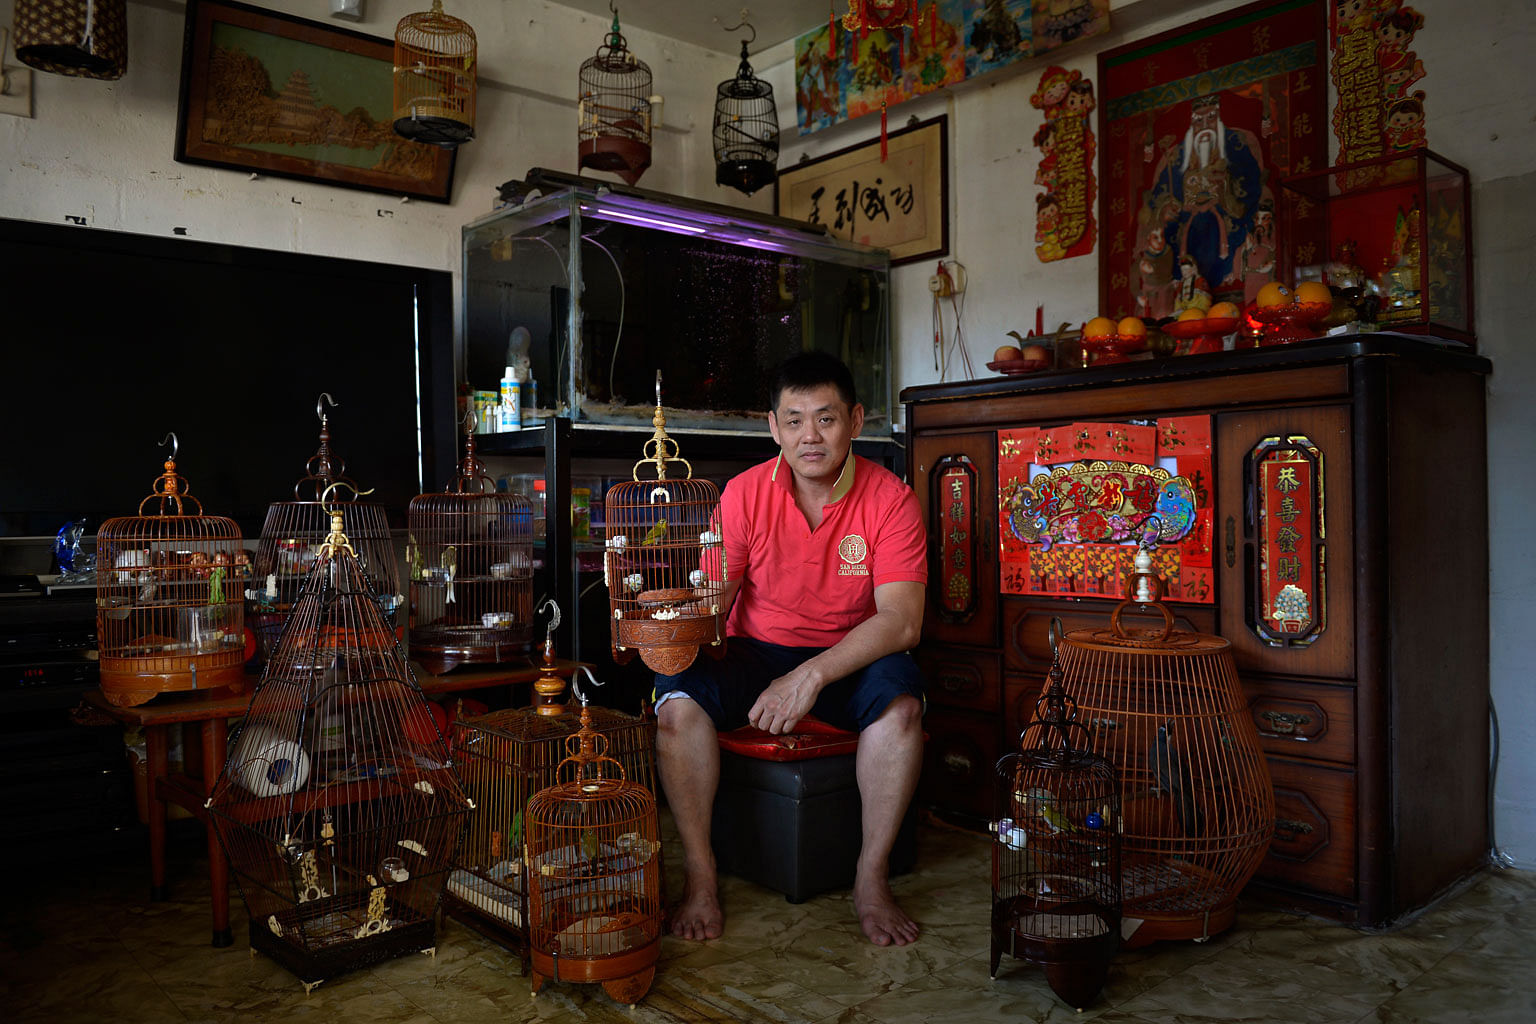 Mr Eric Ang, 46, with his pet birds in his living room. Mr Ang has lived in the estate all his life, and says that if he had the choice, he would not leave. He currently spends his time at home taking care of his bedridden elderly mother.